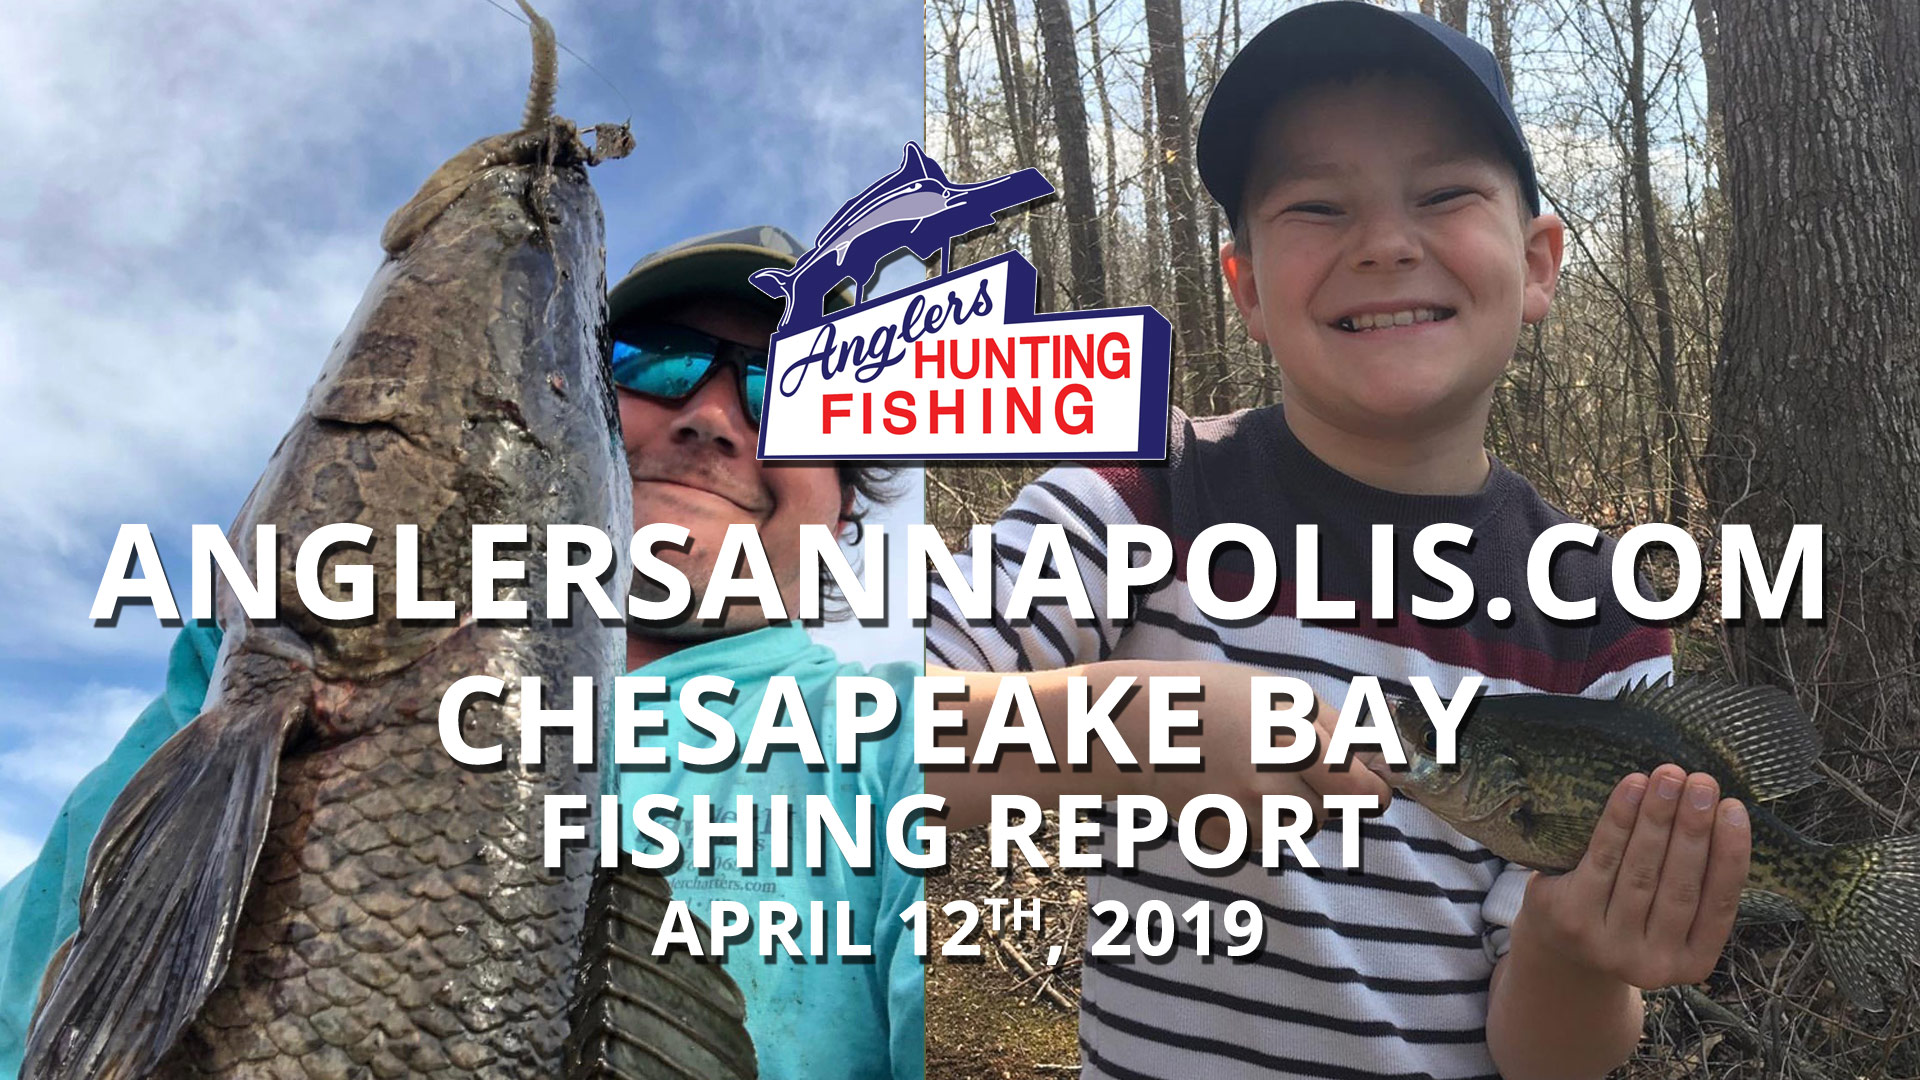 Chesapeake Bay Fishing Report - April 12th, 2019